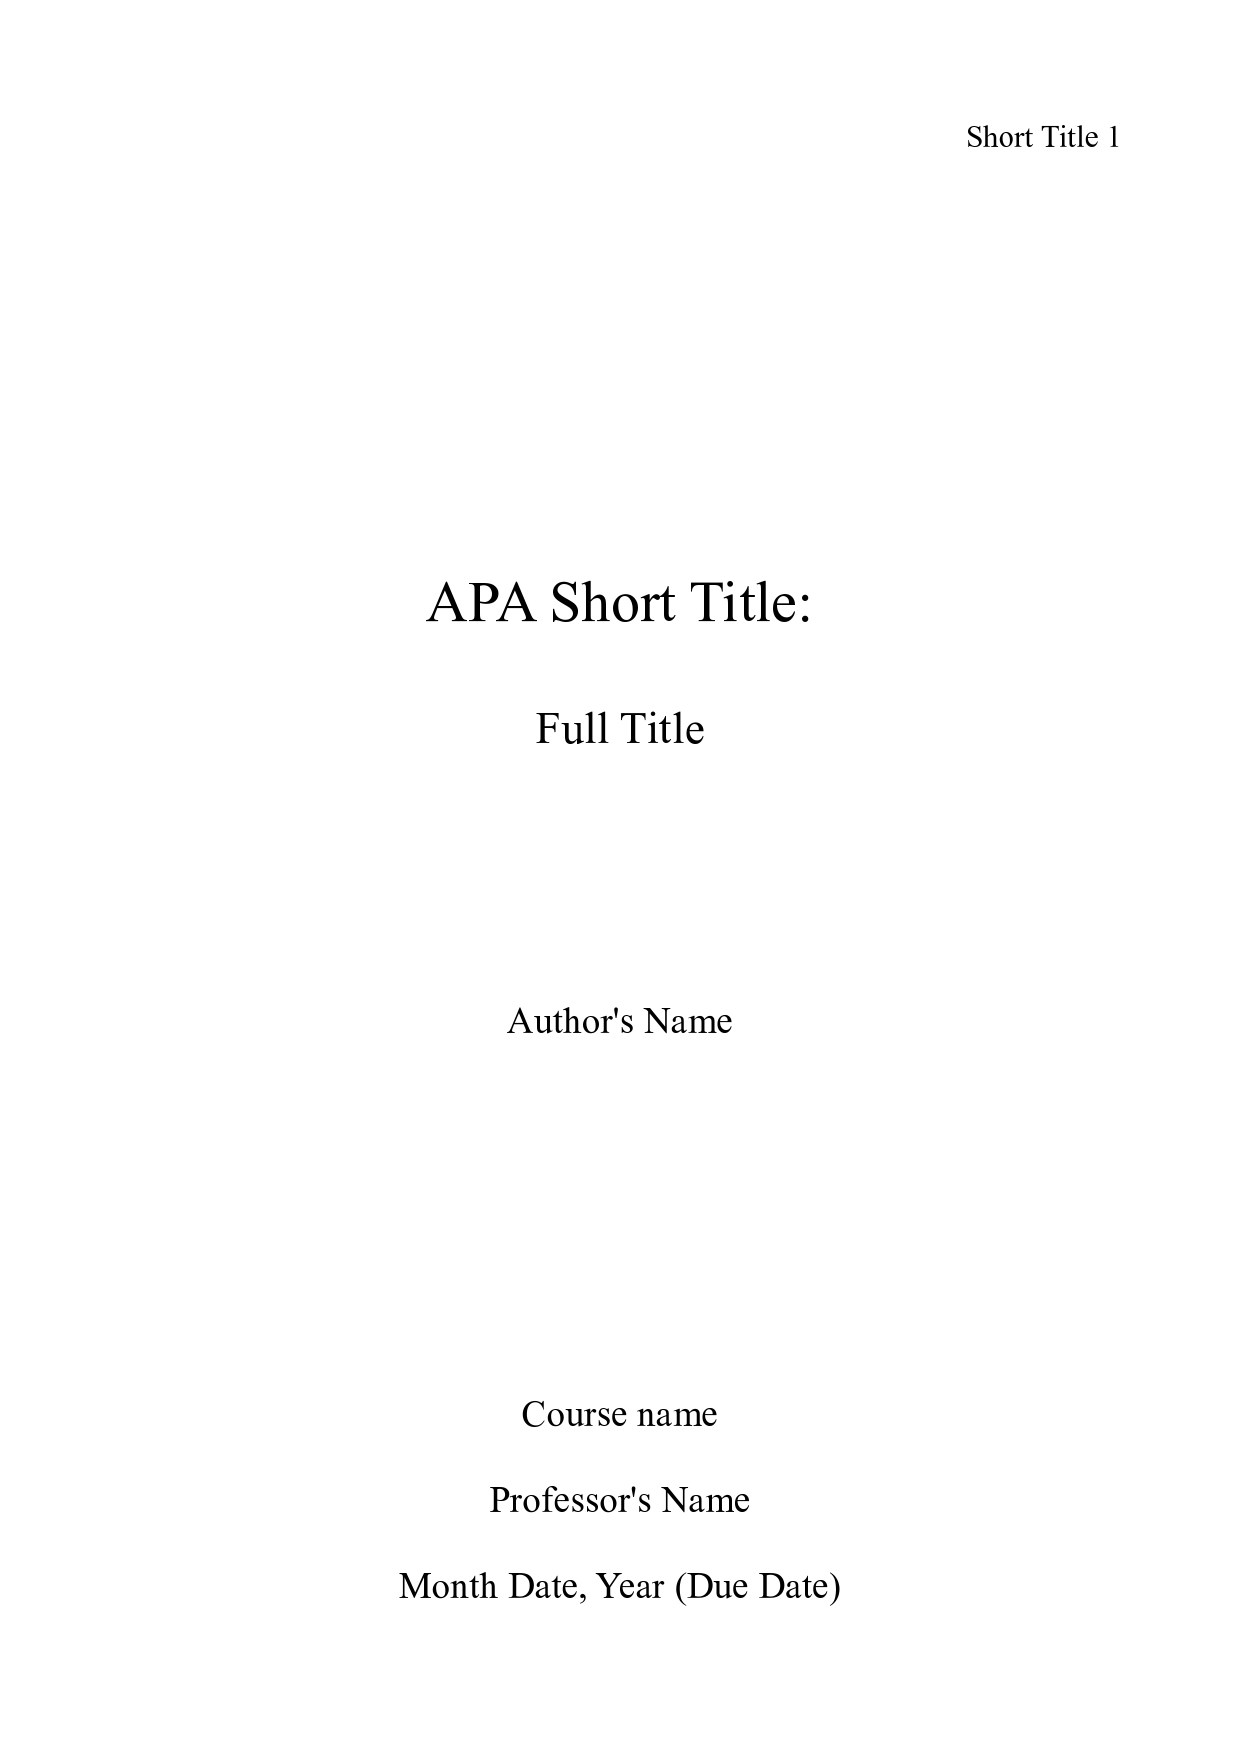 009 Apa Title Page Sample Mla Research Paper Cover Stunning Example Heading Format Full